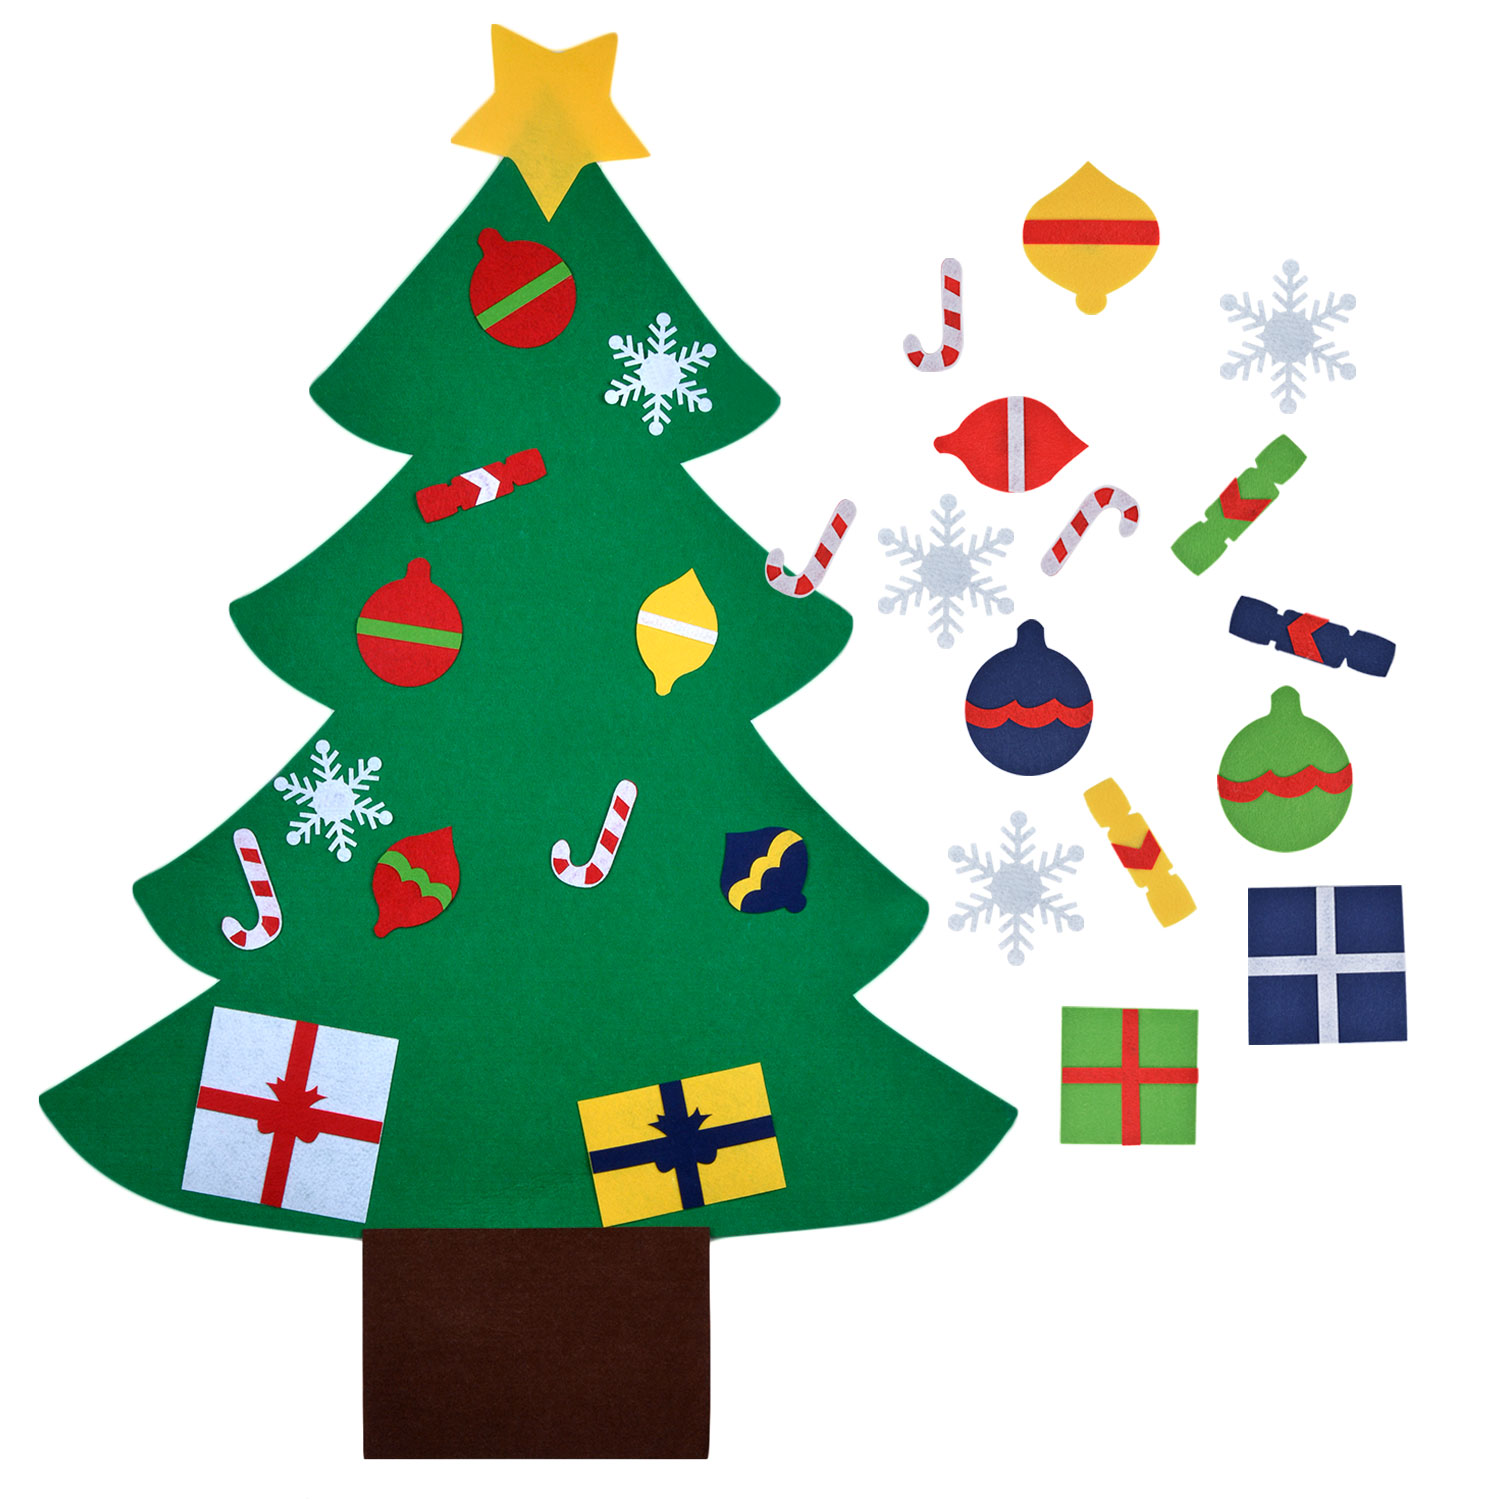 Wall Decor, Outgeek Christmas Game DIY Felt Christmas Tree Kids Educational Toy with Hanging Rope Party Home Accessories Supplies Decorations Ornaments